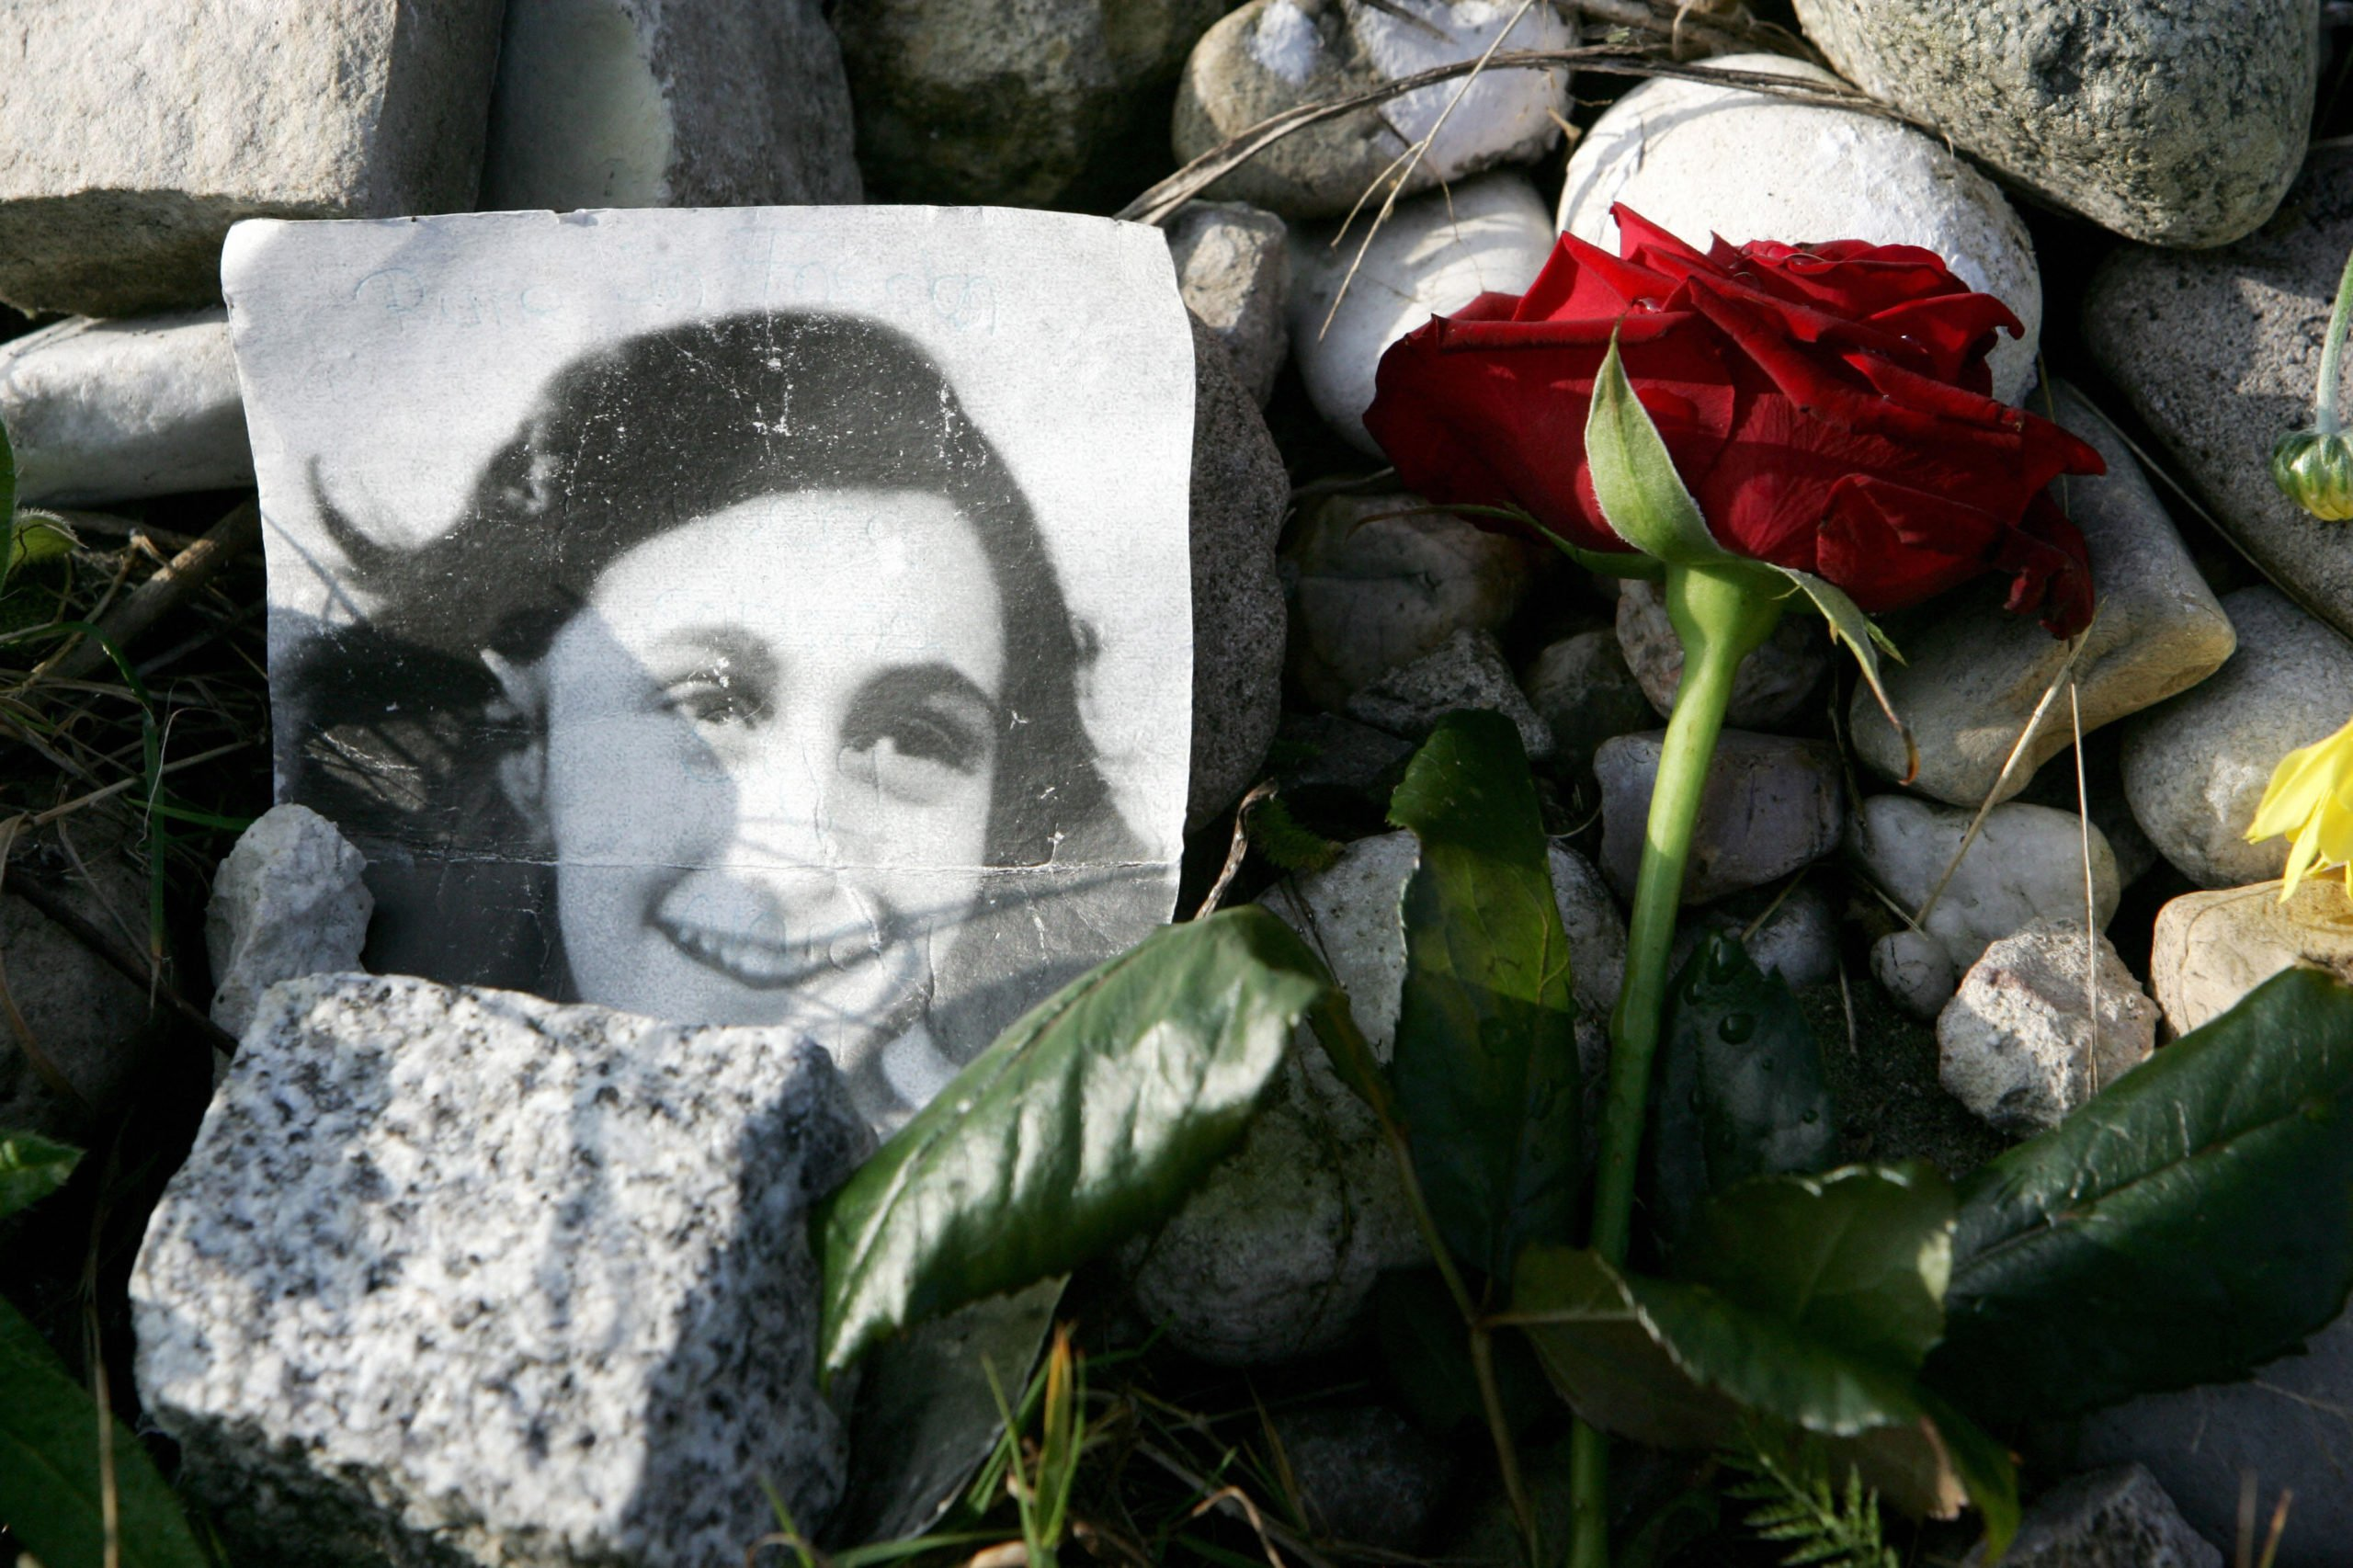 """A picture of Anne Frank lies in front of the memorial stone for Jewish girl Anne Frank, author of """"The Diary of a Young Girl"""", and her sister Margot, 28 October 2007 on the grounds of the new Bergen-Belsen Memorial. Both girls died at the concentration camp a few weeks before it was liberated by British troops in April 1945. (NIGEL TREBLIN/DDP/AFP via Getty Images)"""